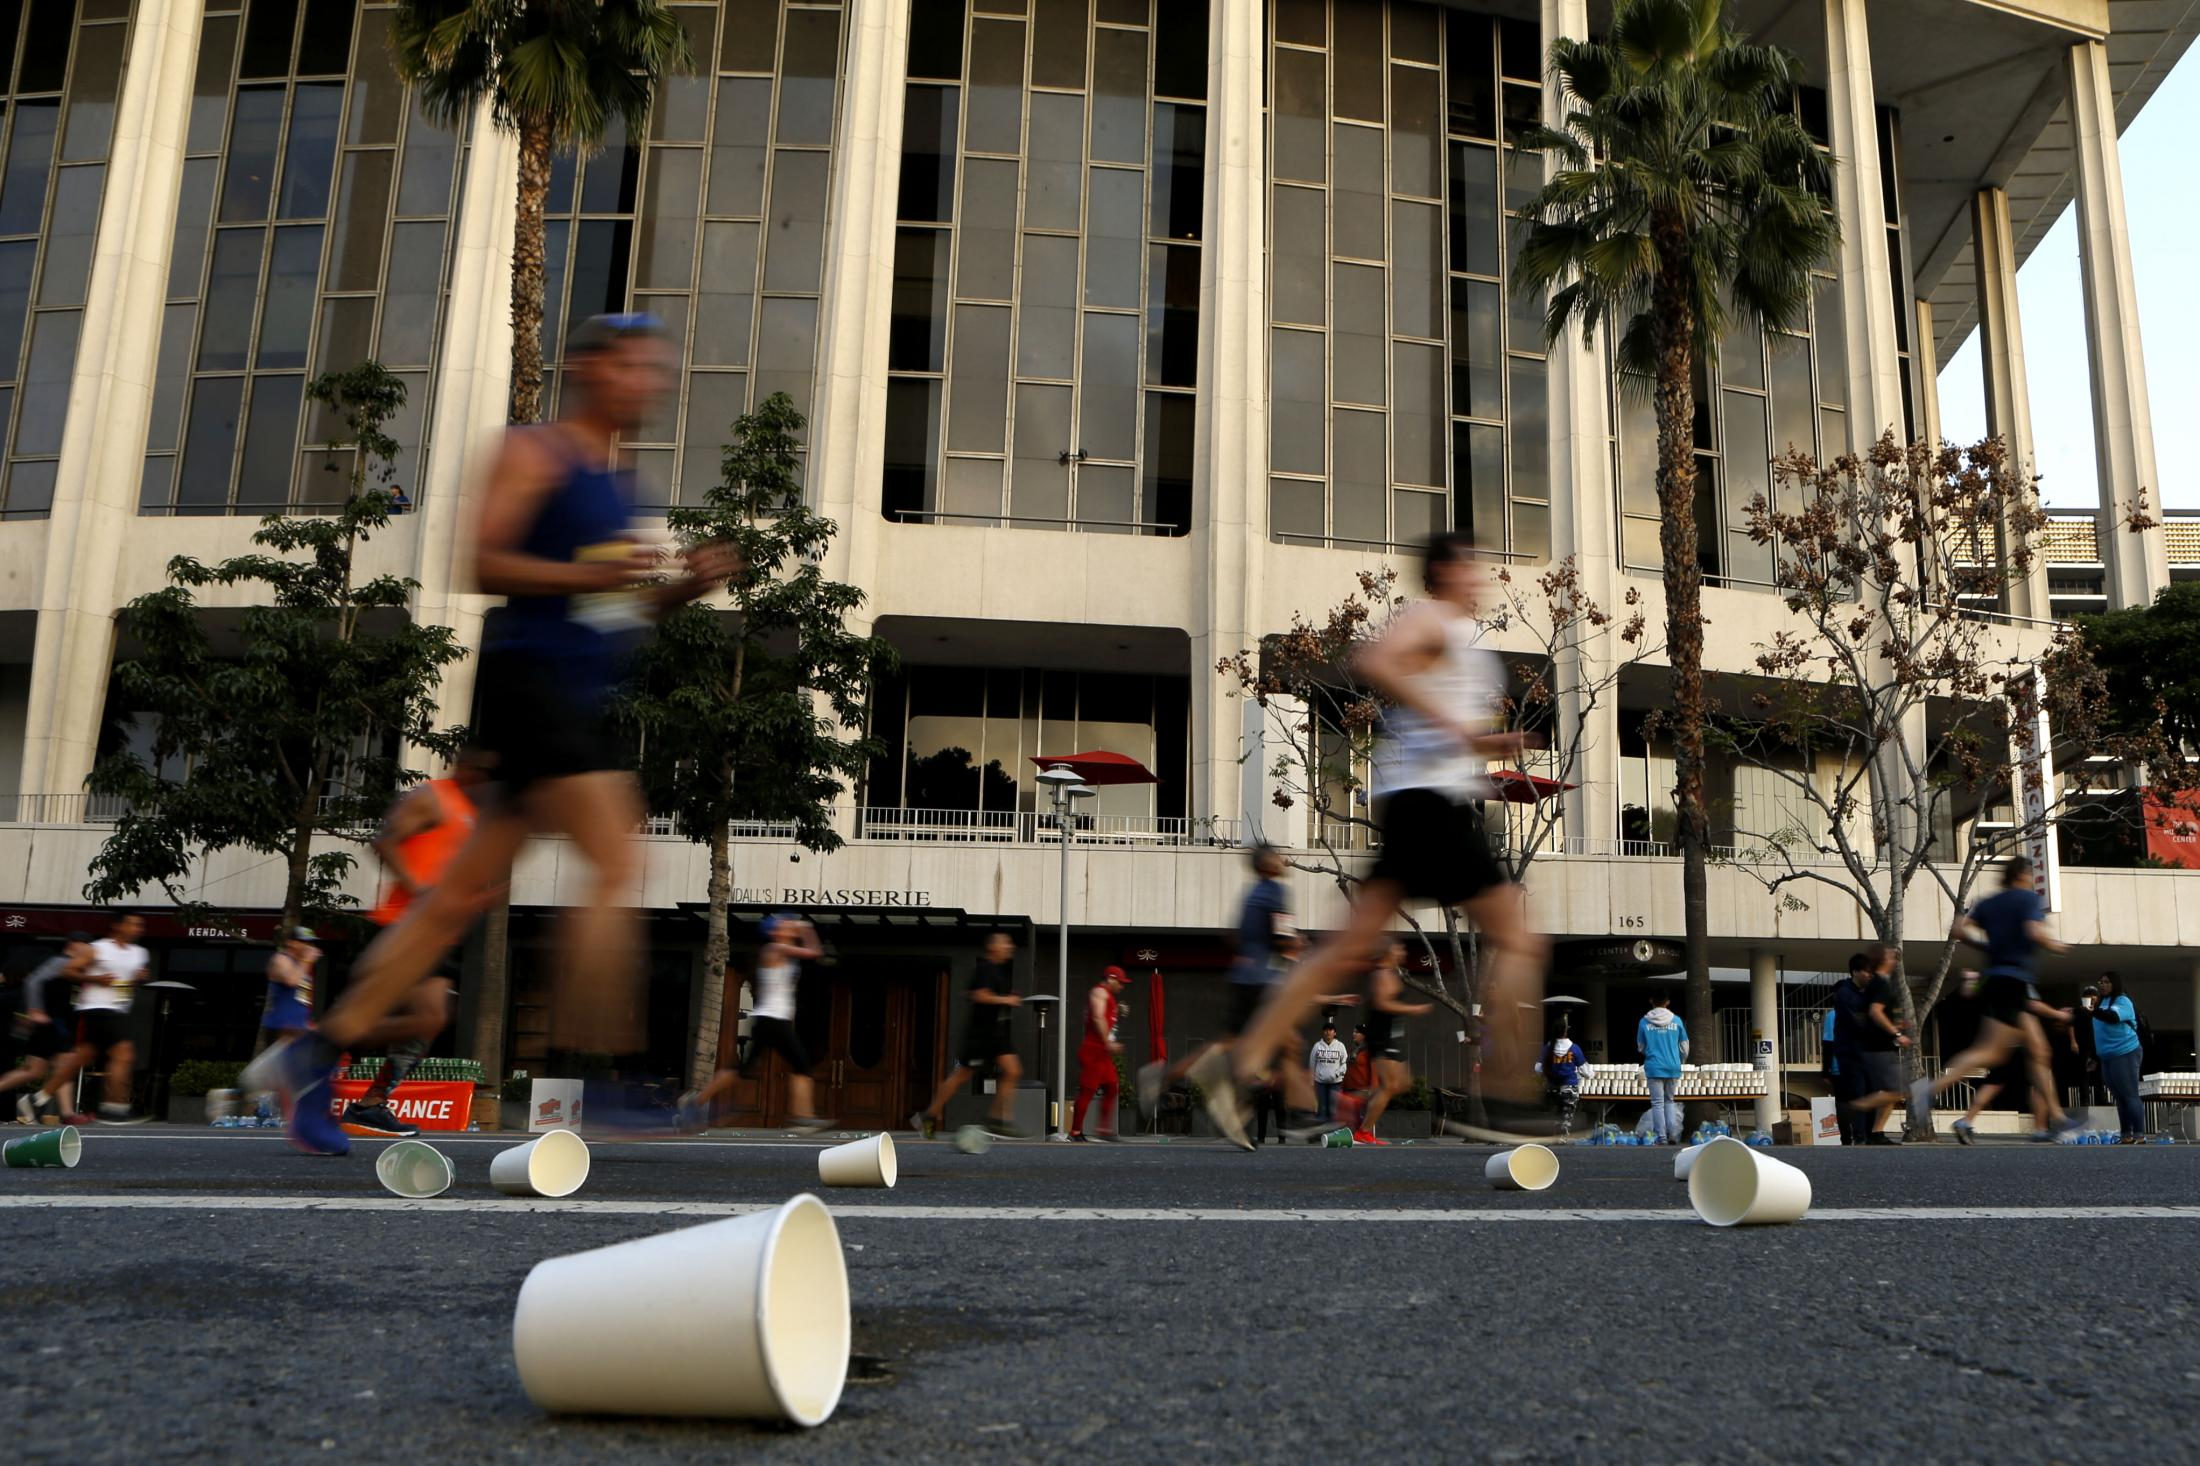 LOS ANGELES, CALIFORNIA - MARCH 24:   Runners run past the Dorothy Chandler Pavilion during the 2019 Skechers Performance Los Angeles Marathon on March 24, 2019 in Los Angeles, California. (Photo by Katharine Lotze/Getty Images)